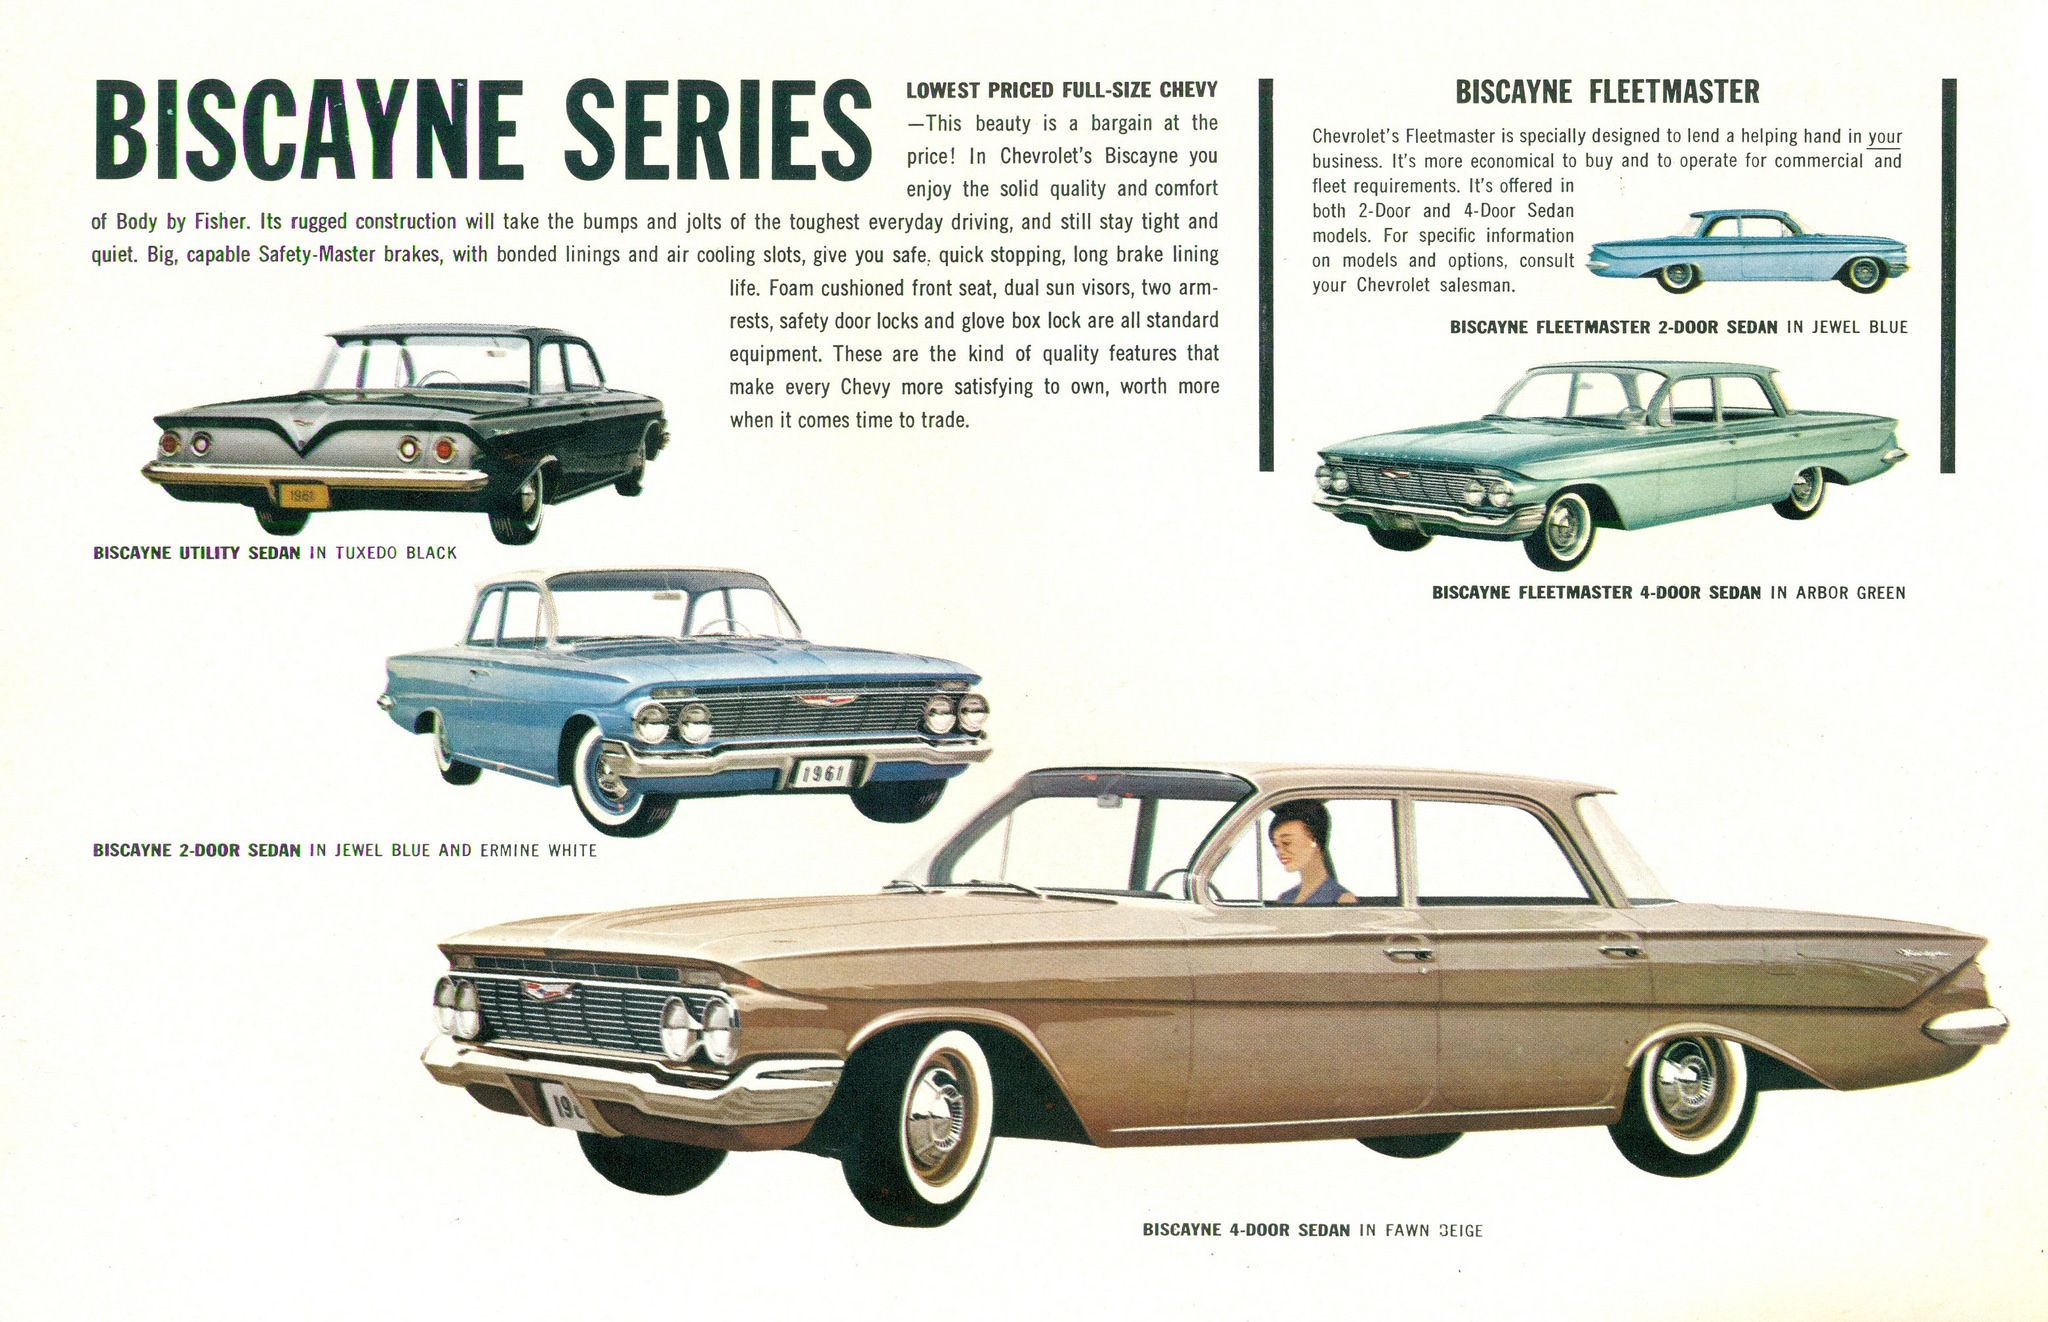 1961 Chevrolet Biscayne Range Chevrolet Automobile Advertising